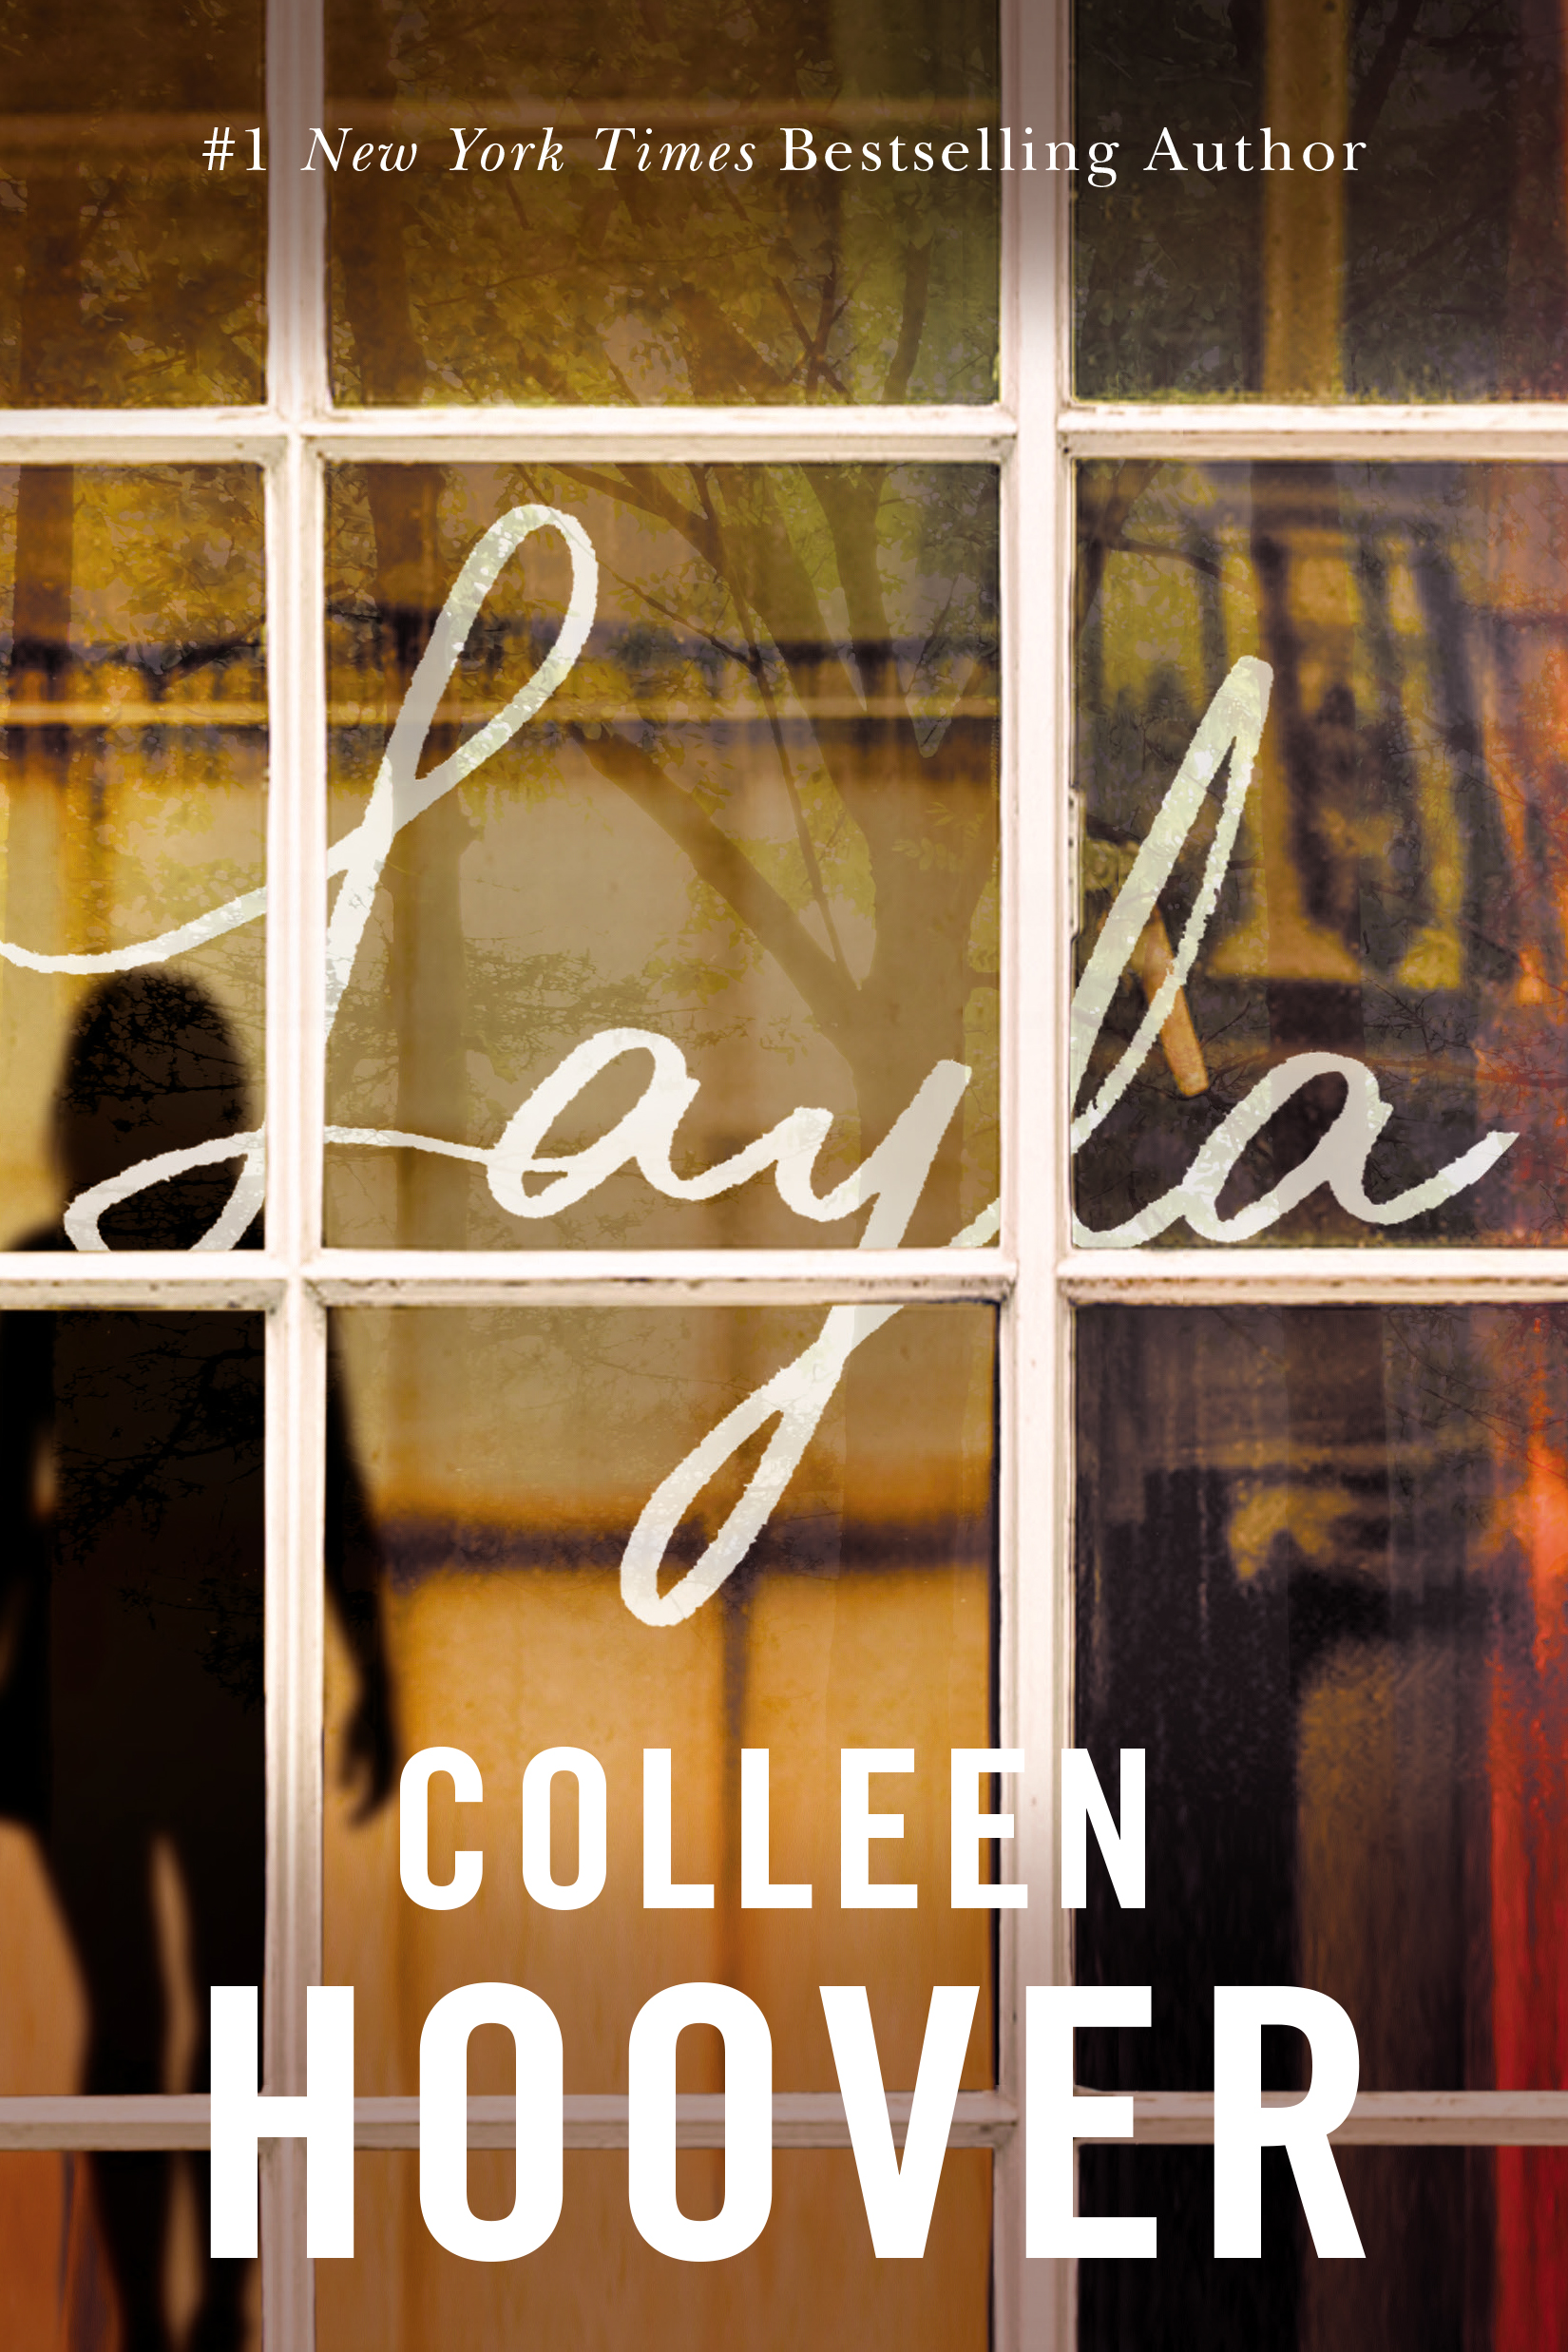 Virtual event with Colleen Hoover/Layla